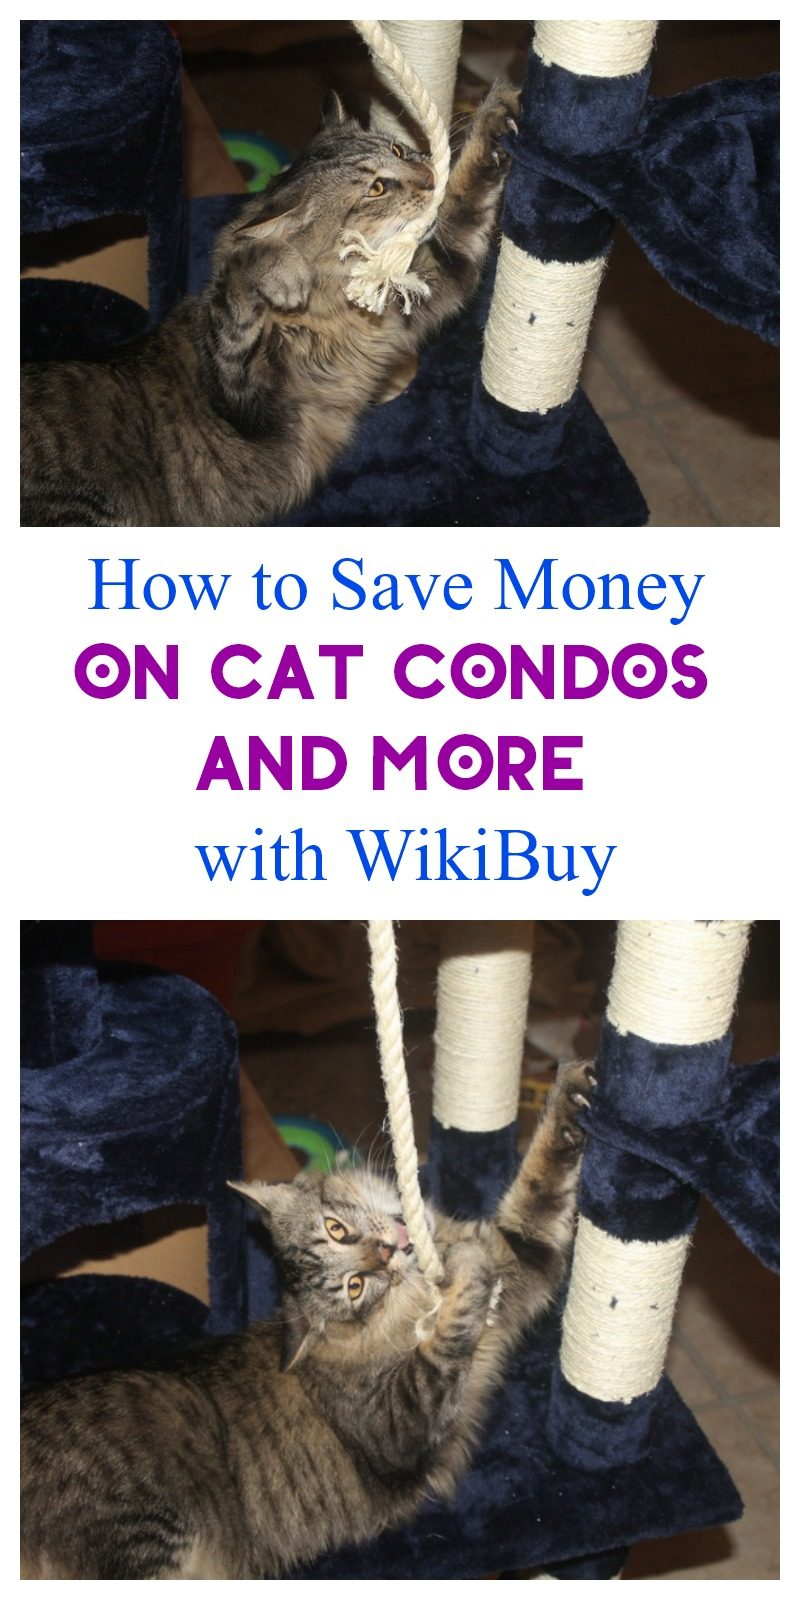 Want to save money while you shop online without manually comparing prices at 100 different stores? Want to make sure you're getting the best deal on sites like Amazon that have a bunch of 3rd party sellers selling the same thing? You'll love WikiBuy!